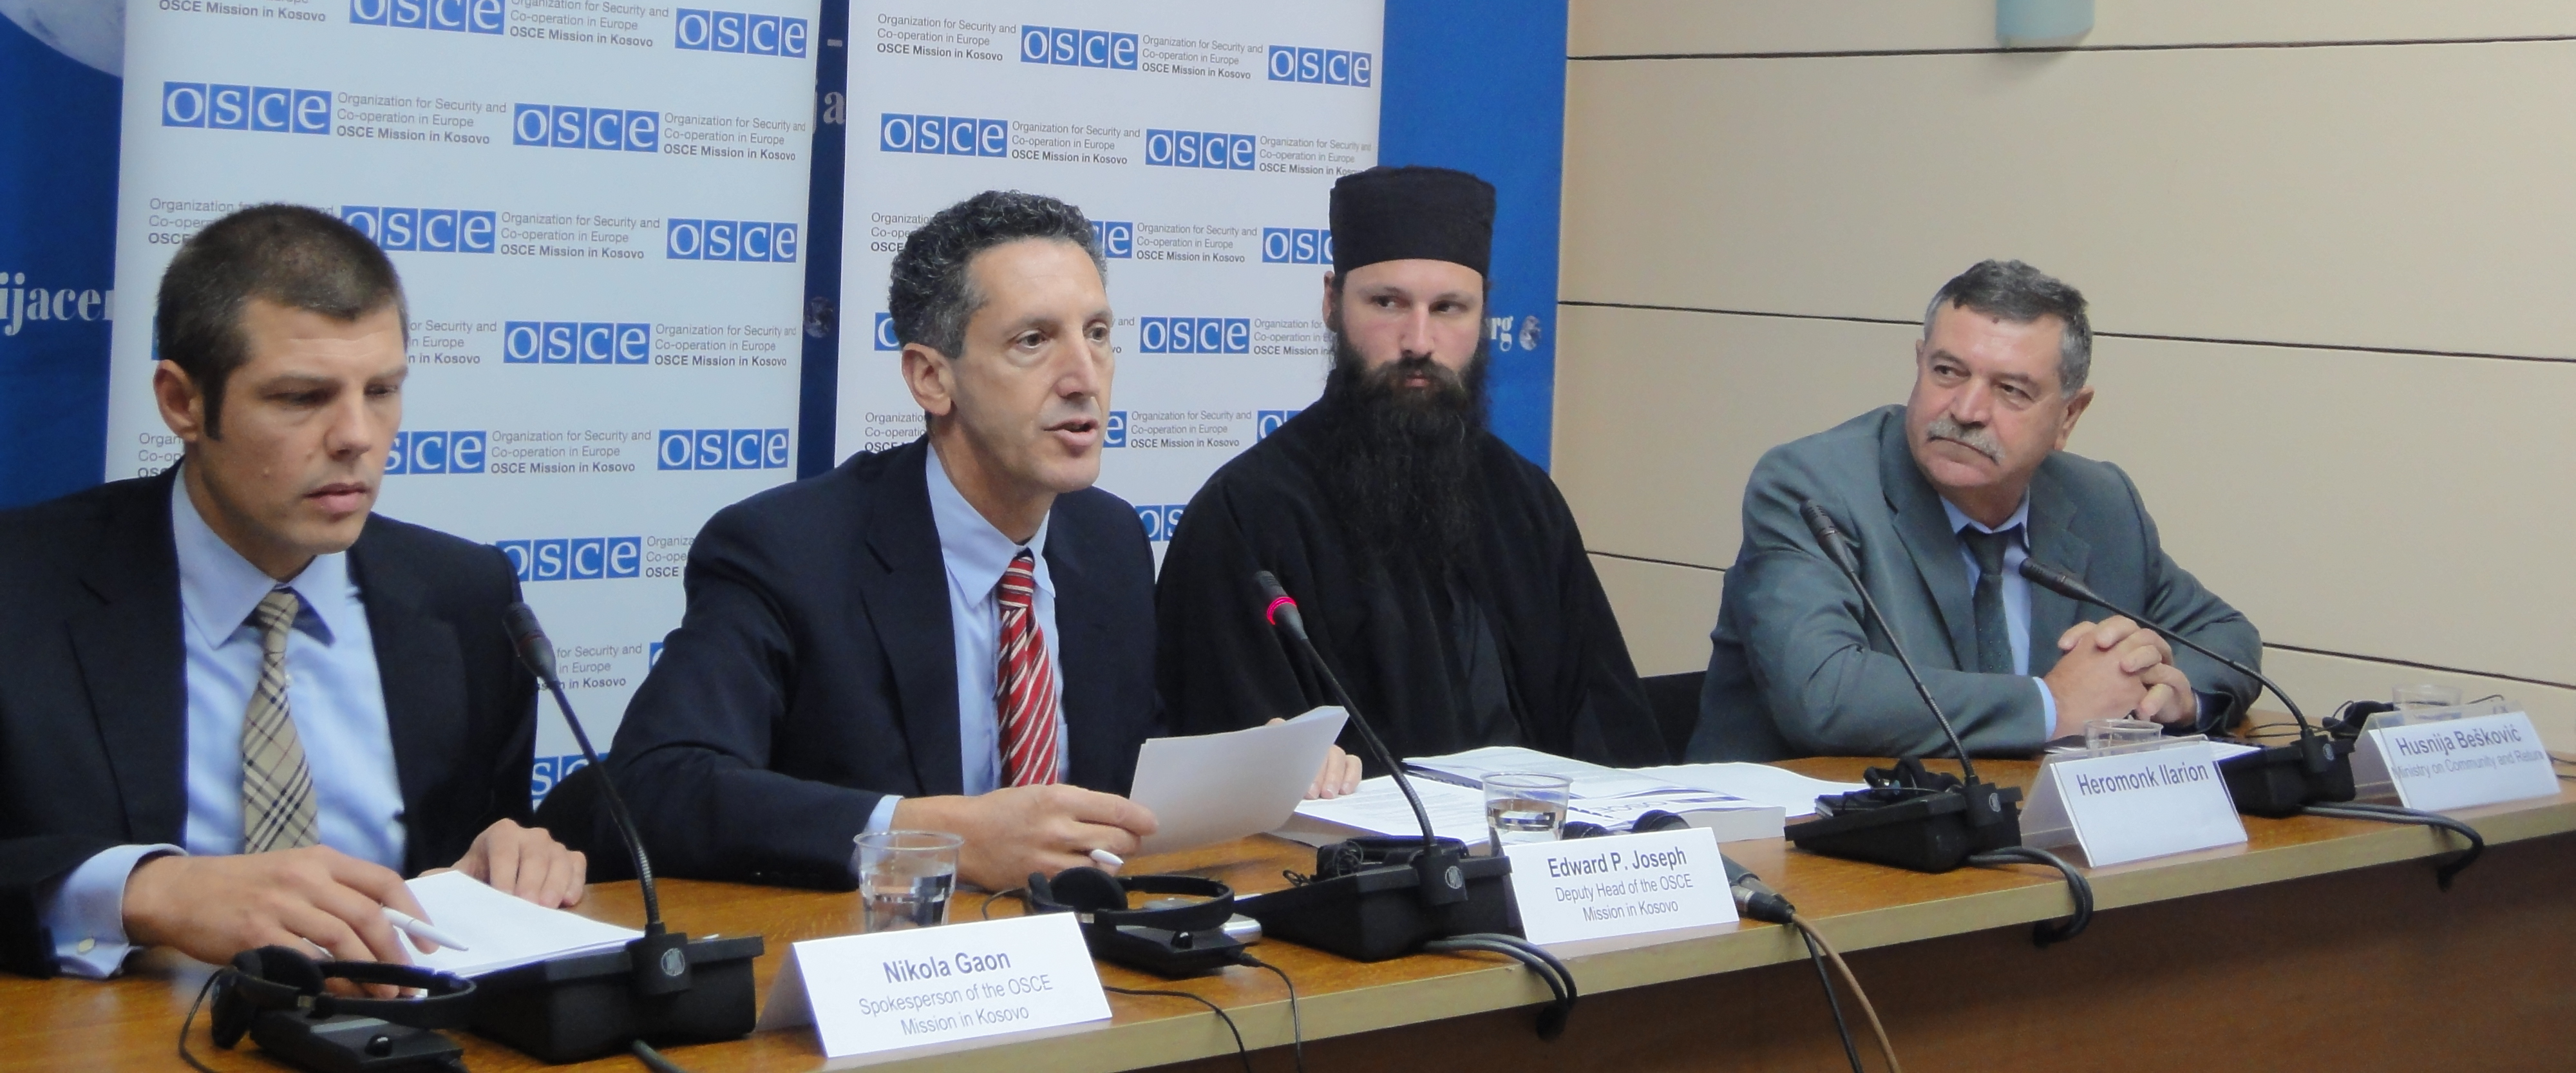 Deputy Head of OSCE Mission (Edward P. Joseph) seated next to Serbian Orthodox priest at the release of OSCE's report on the condition of Serb graveyards in Kosovo.